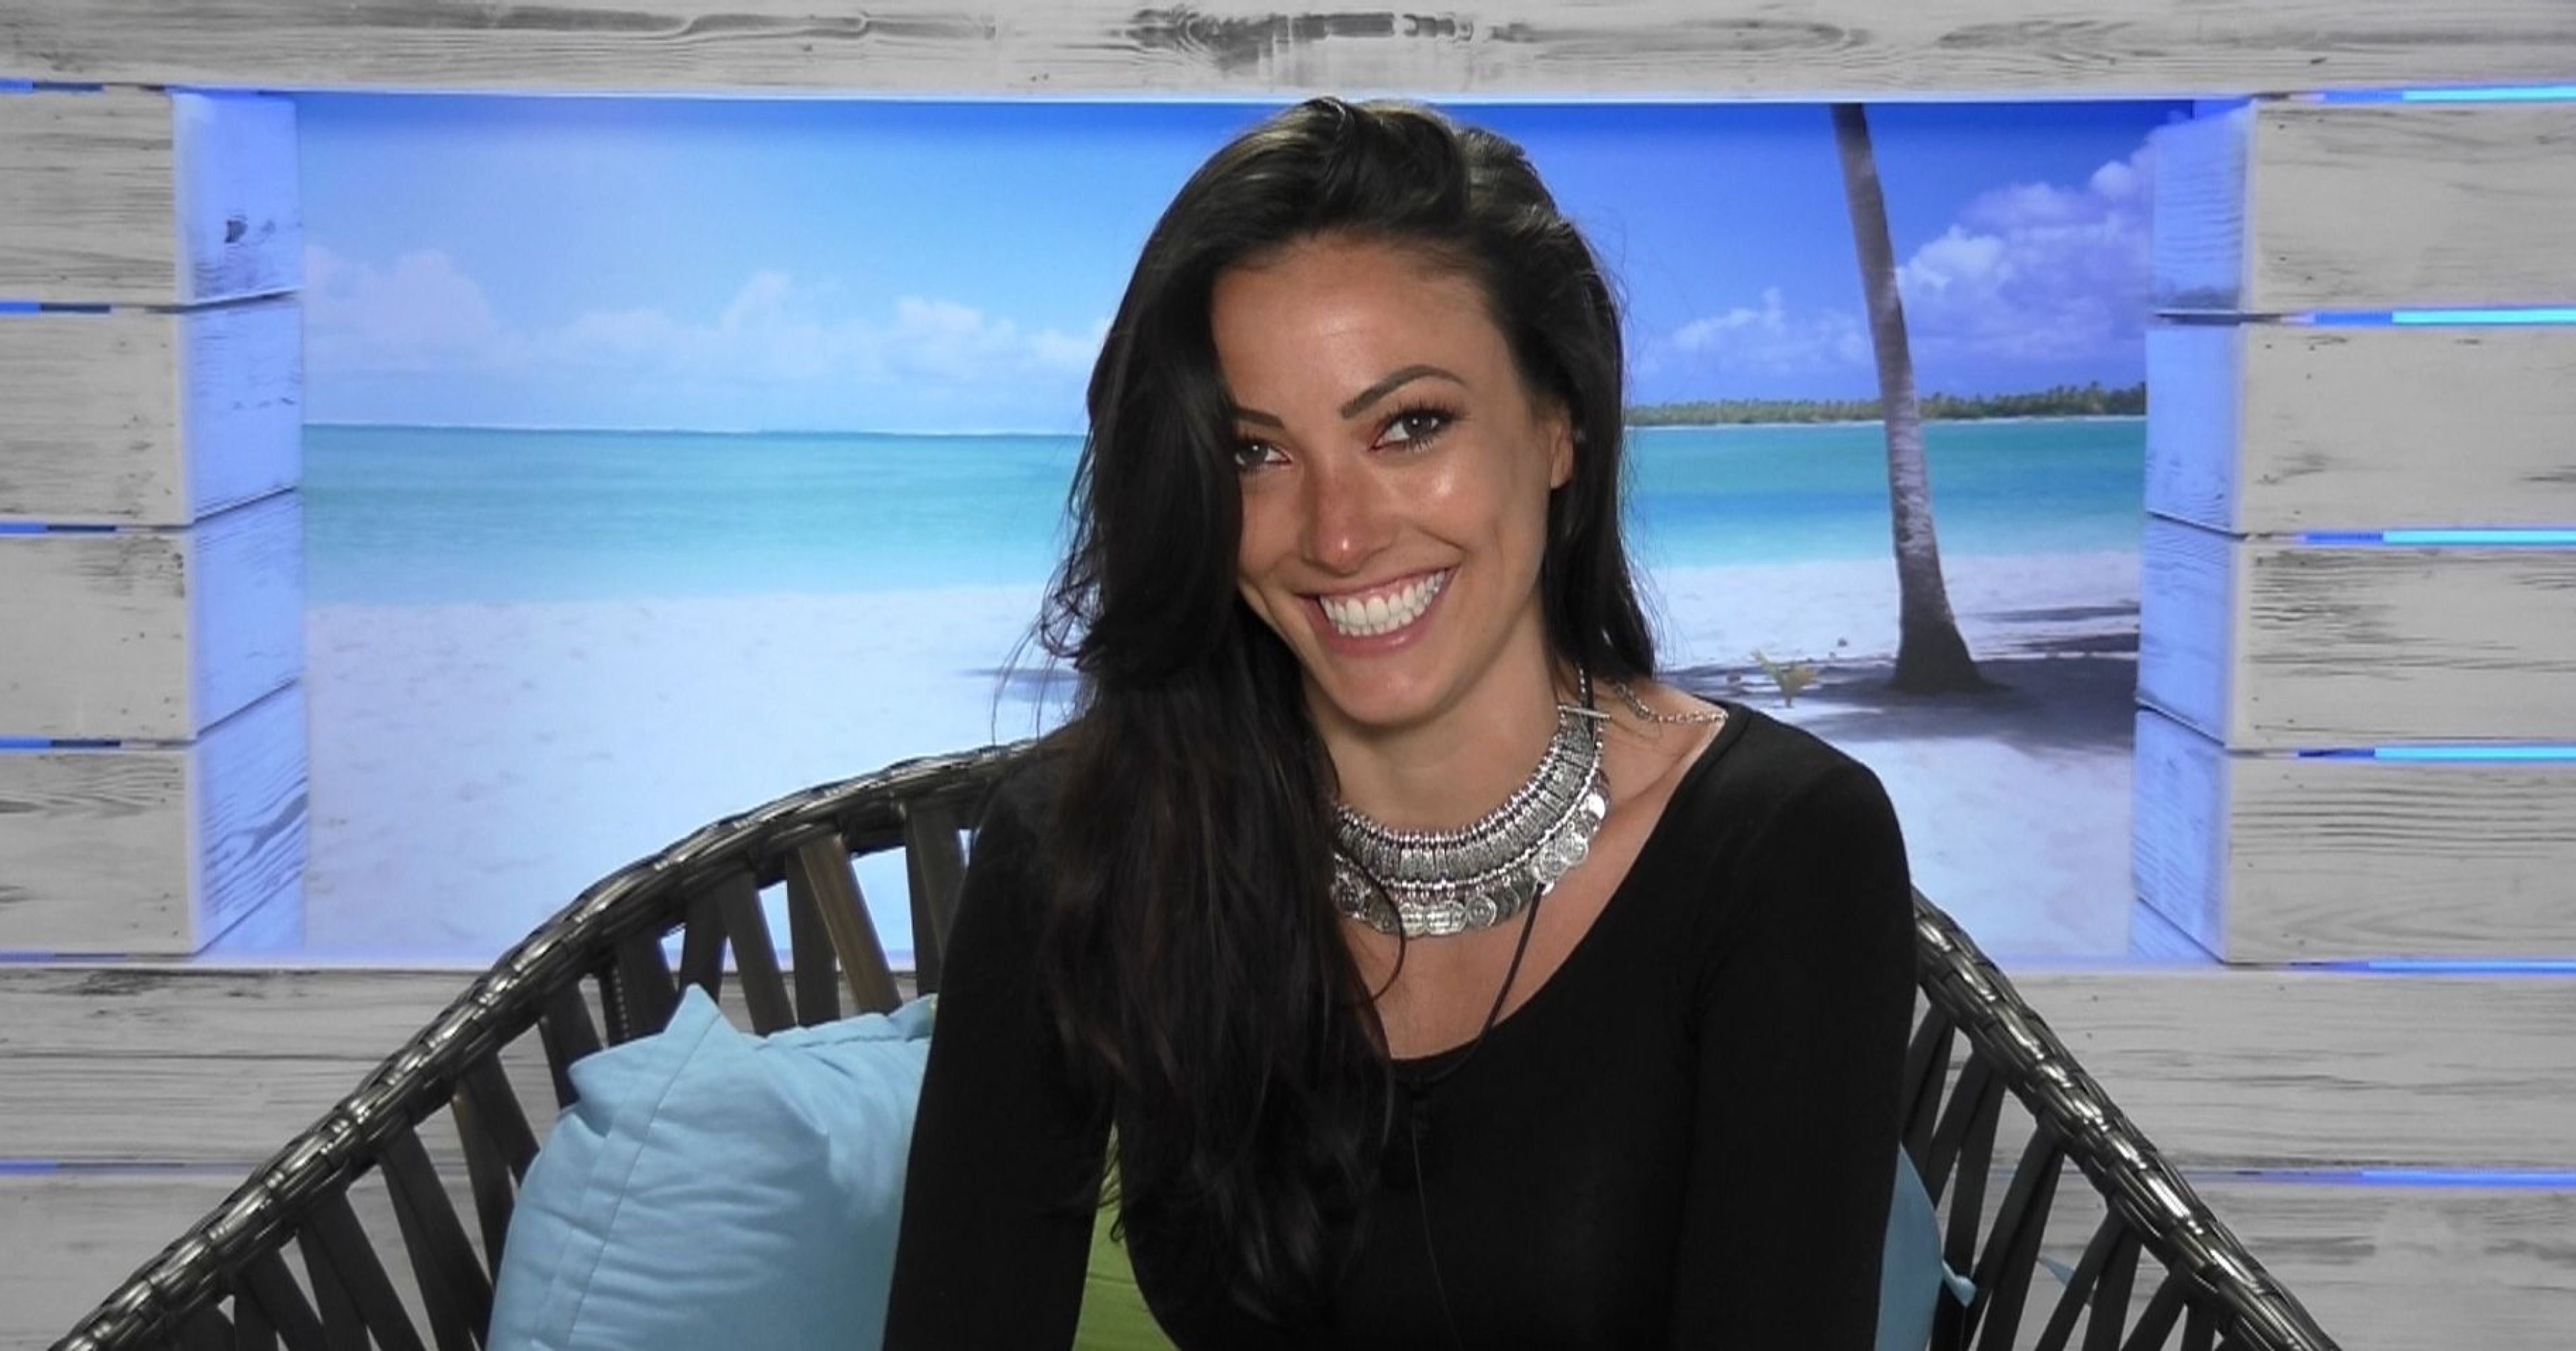 Sophie appeared on the second series of 'Love Island' in